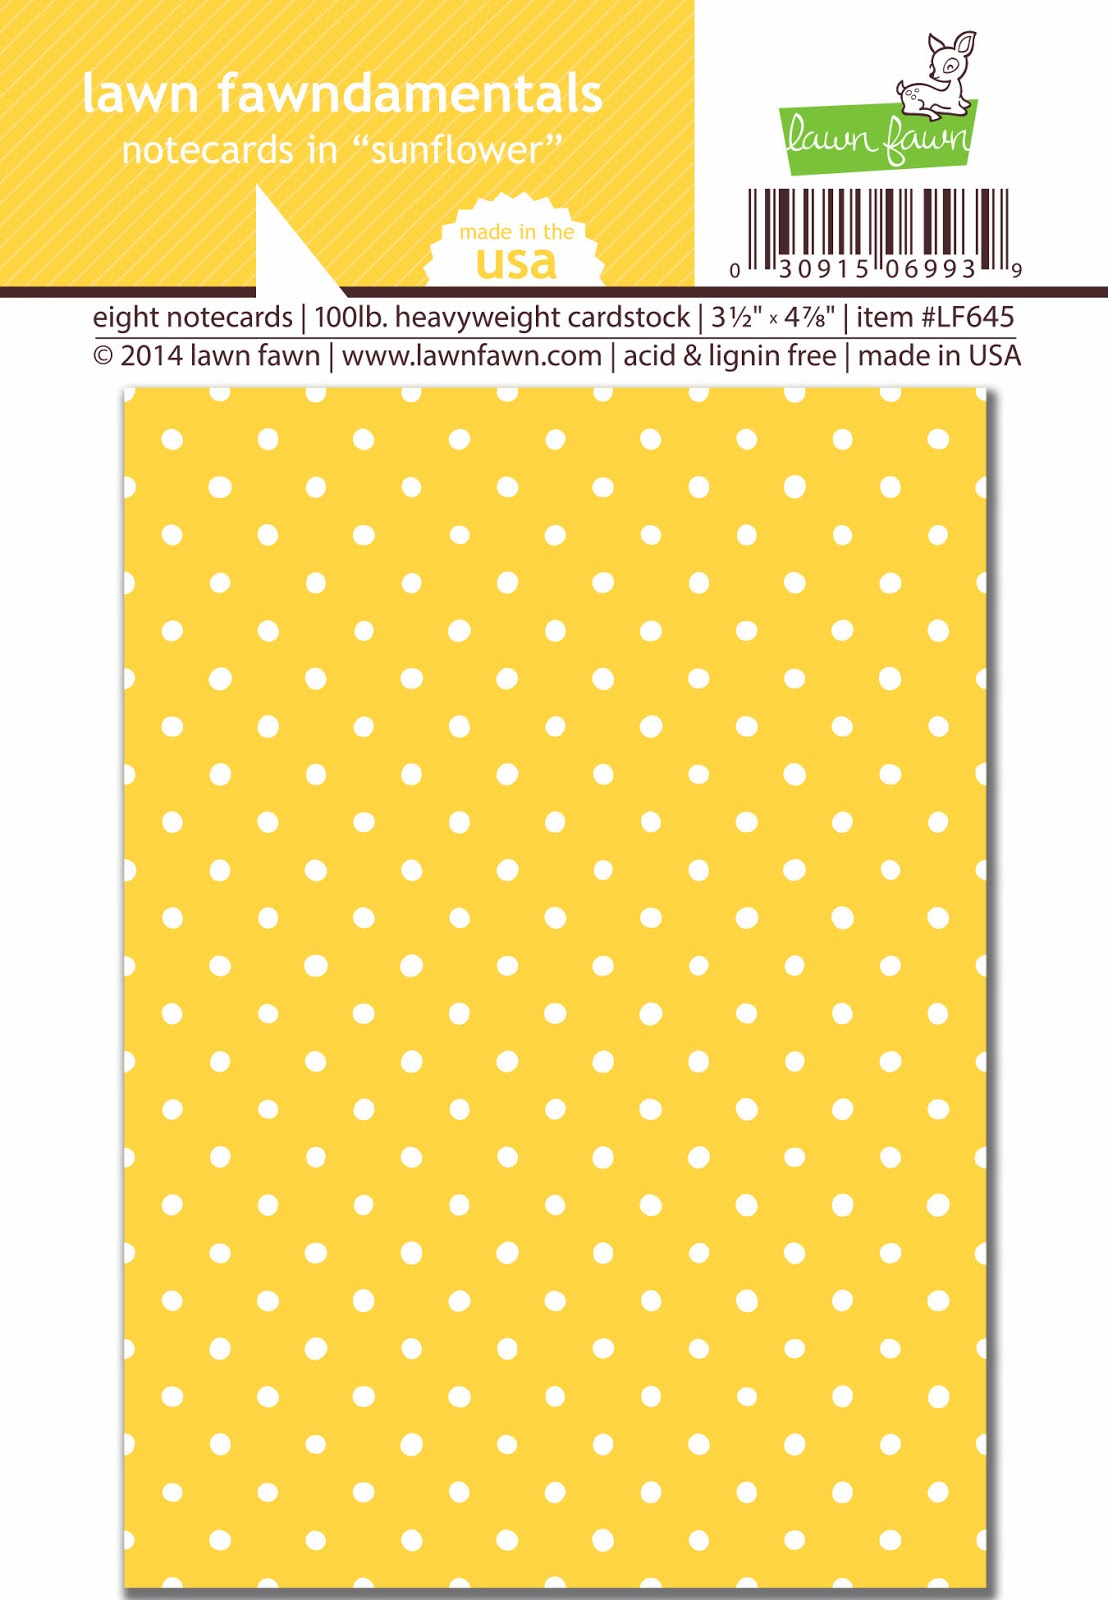 http://www.lawnfawn.com/collections/new-products/products/sunflower-notecards